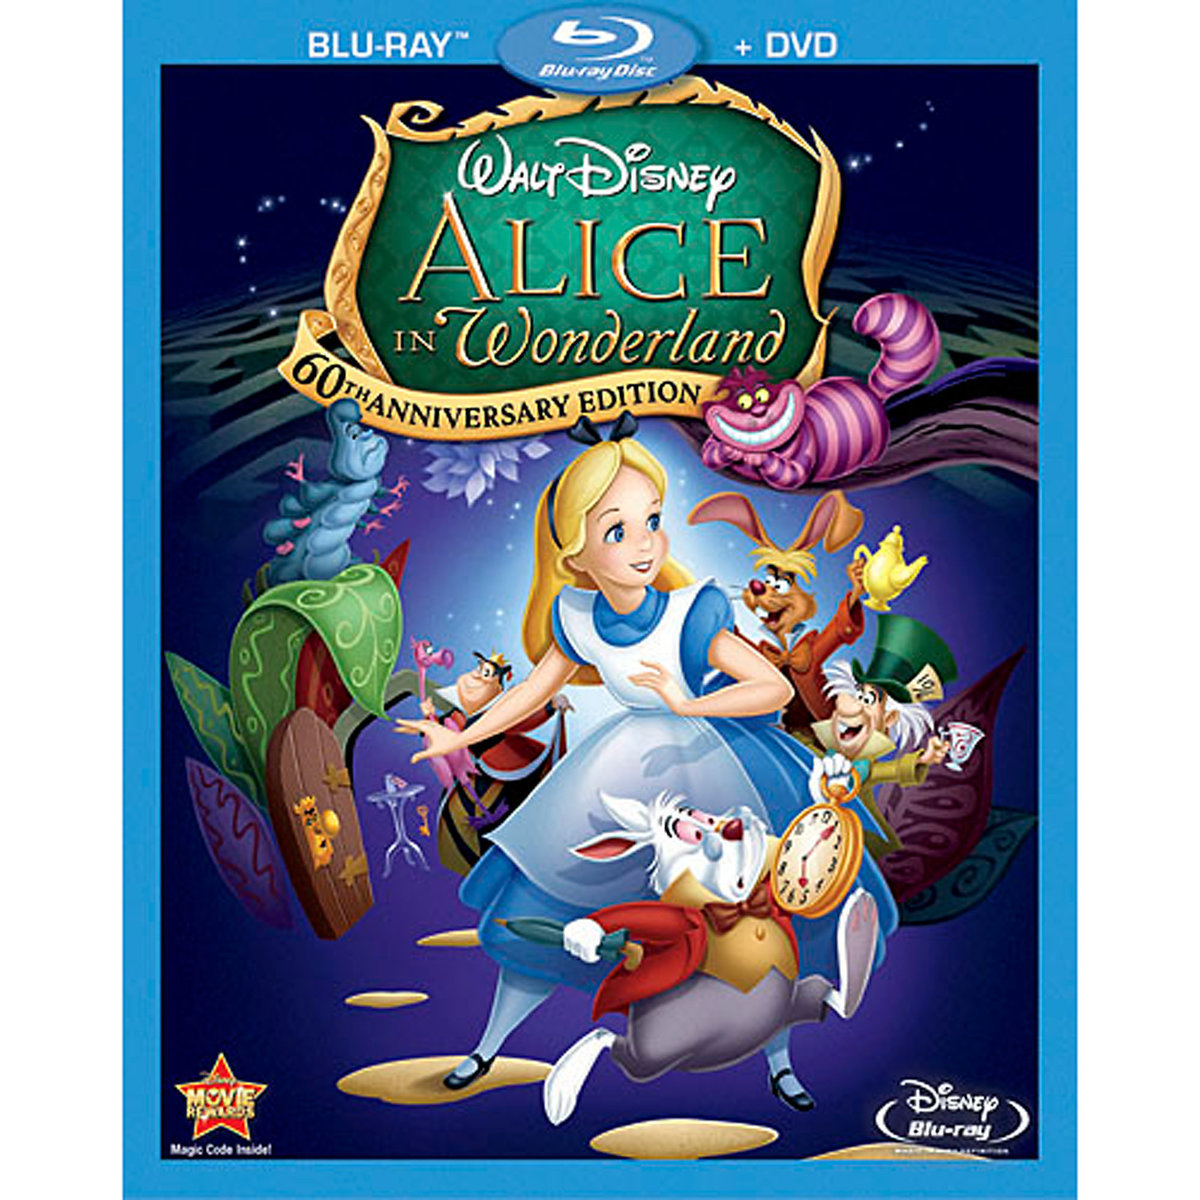 Alice in Wonderland (1951) (60th Anniversary Edition) (Blu-ray + DVD) by DISNEY/BUENA VISTA HOME VIDEO